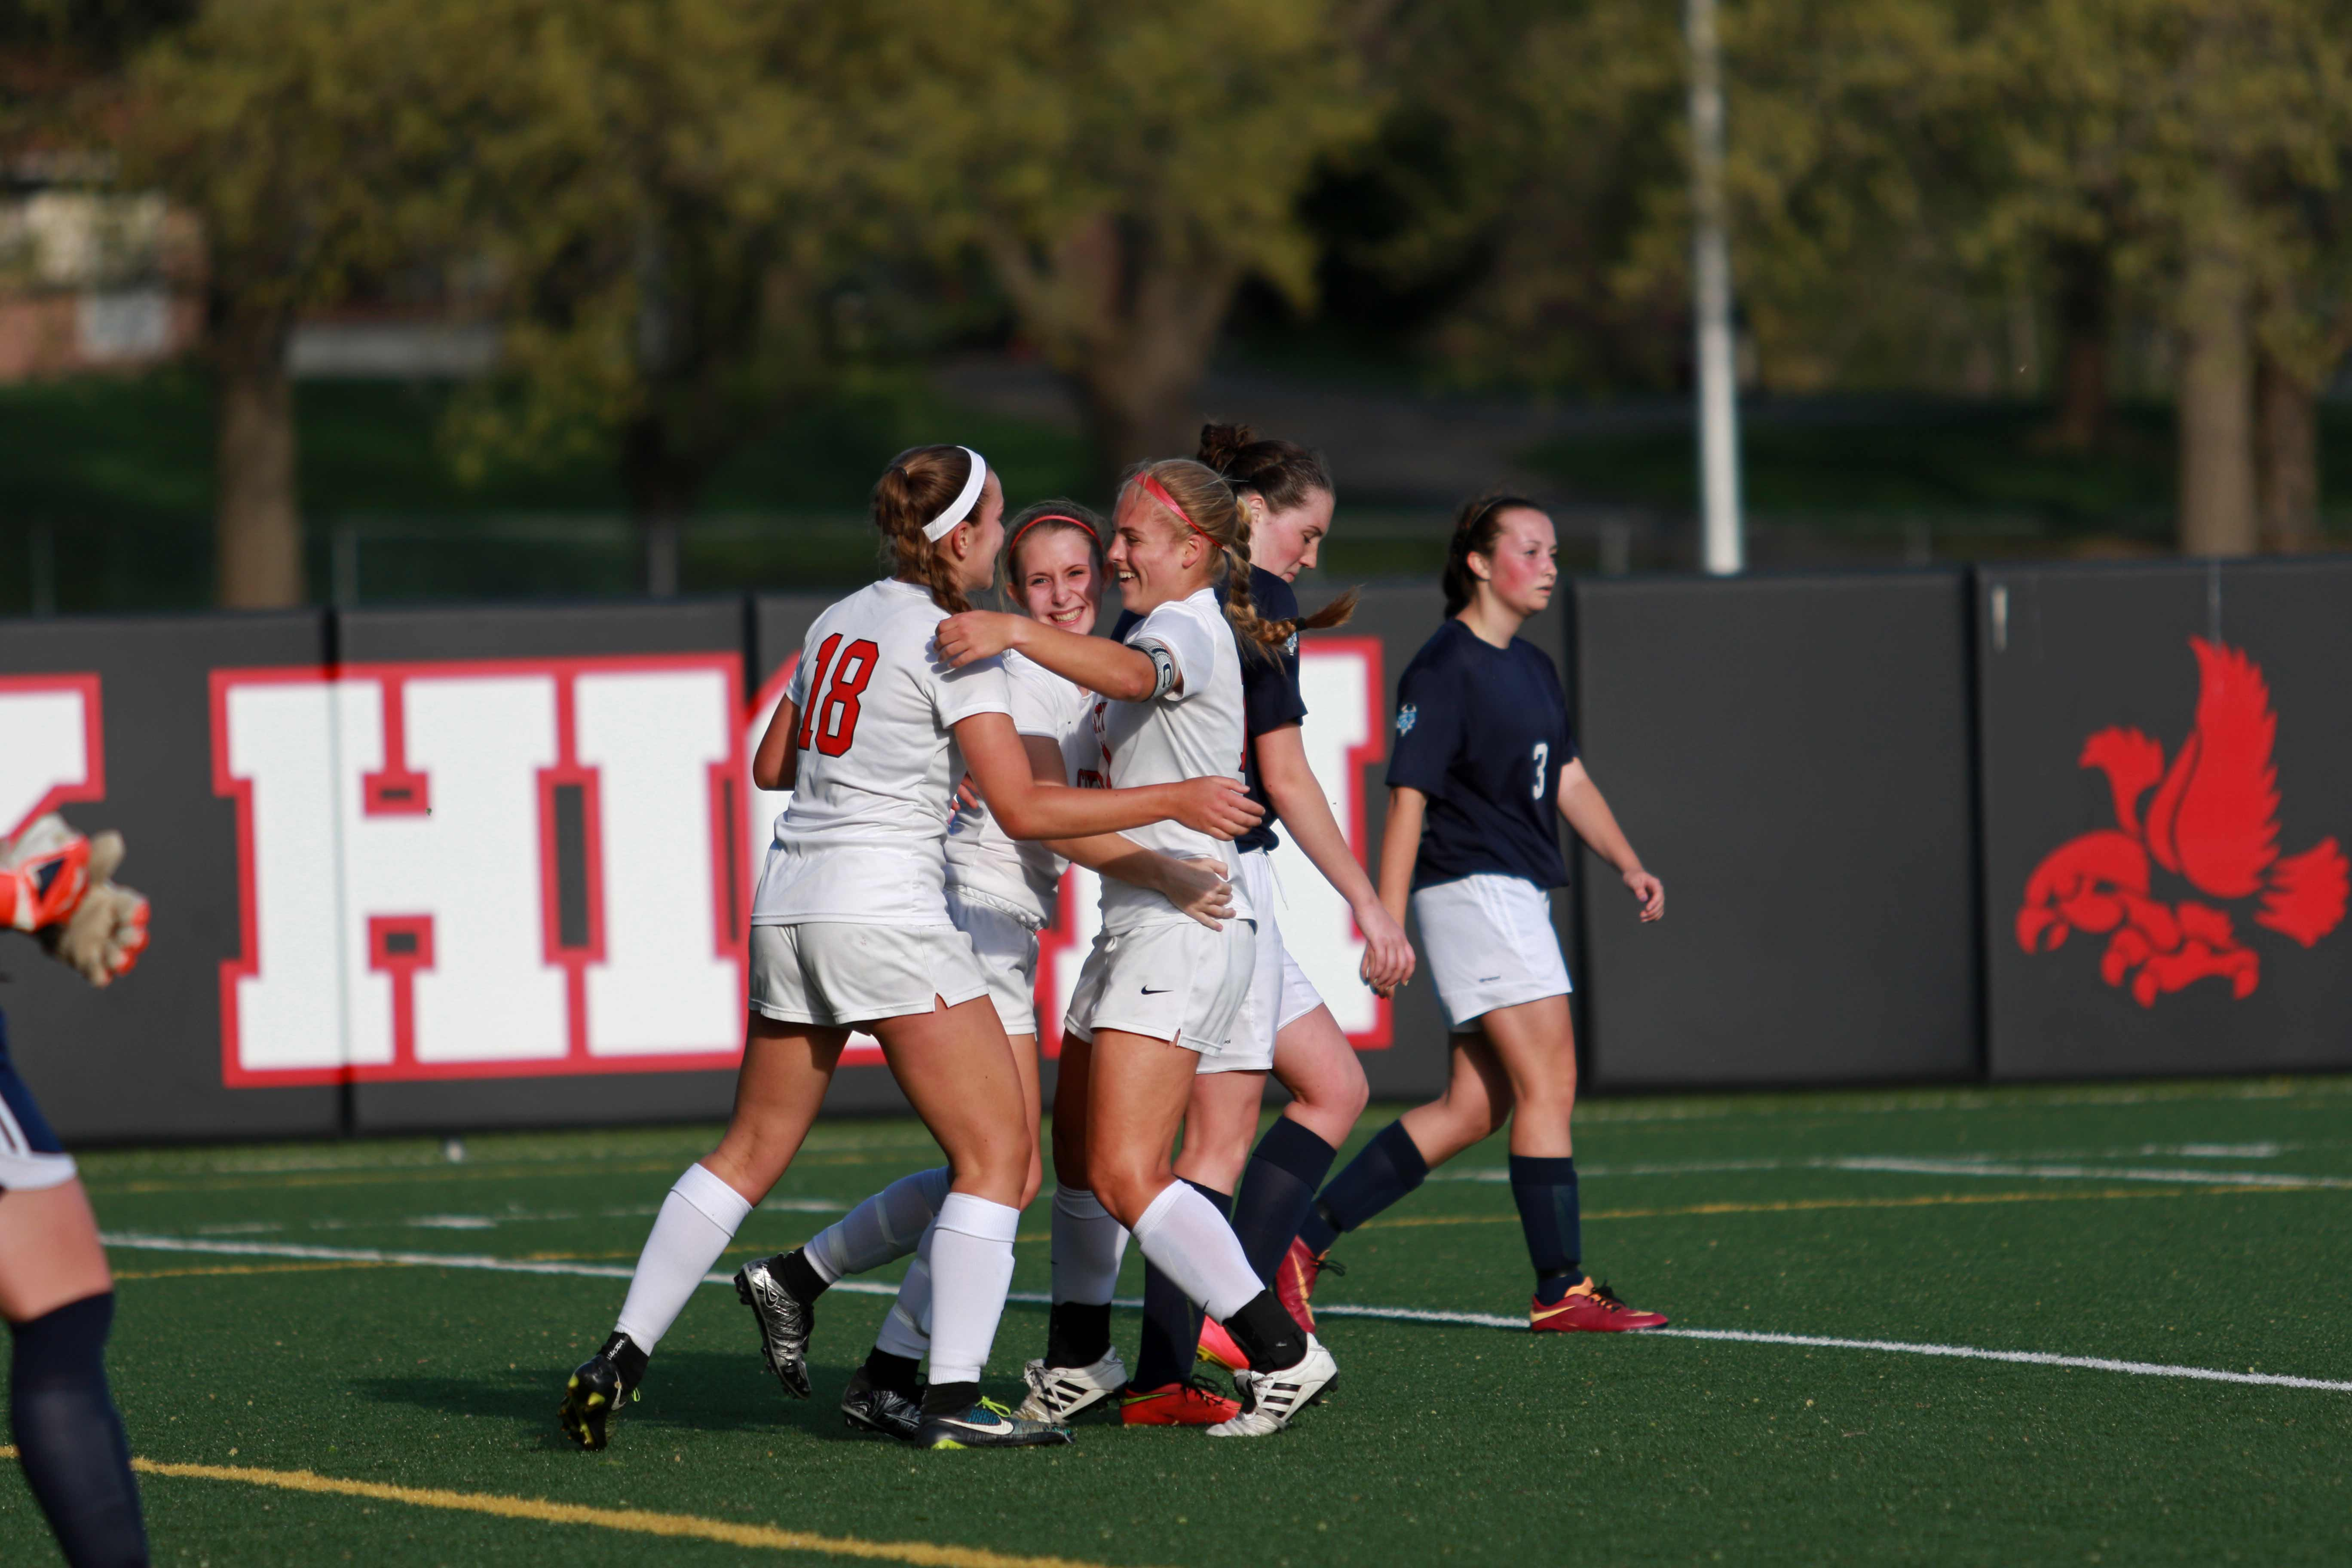 Teammates celebrate with Grace Brown '17 after her goal in the 39th minute in the first half on April 26th, 2016.